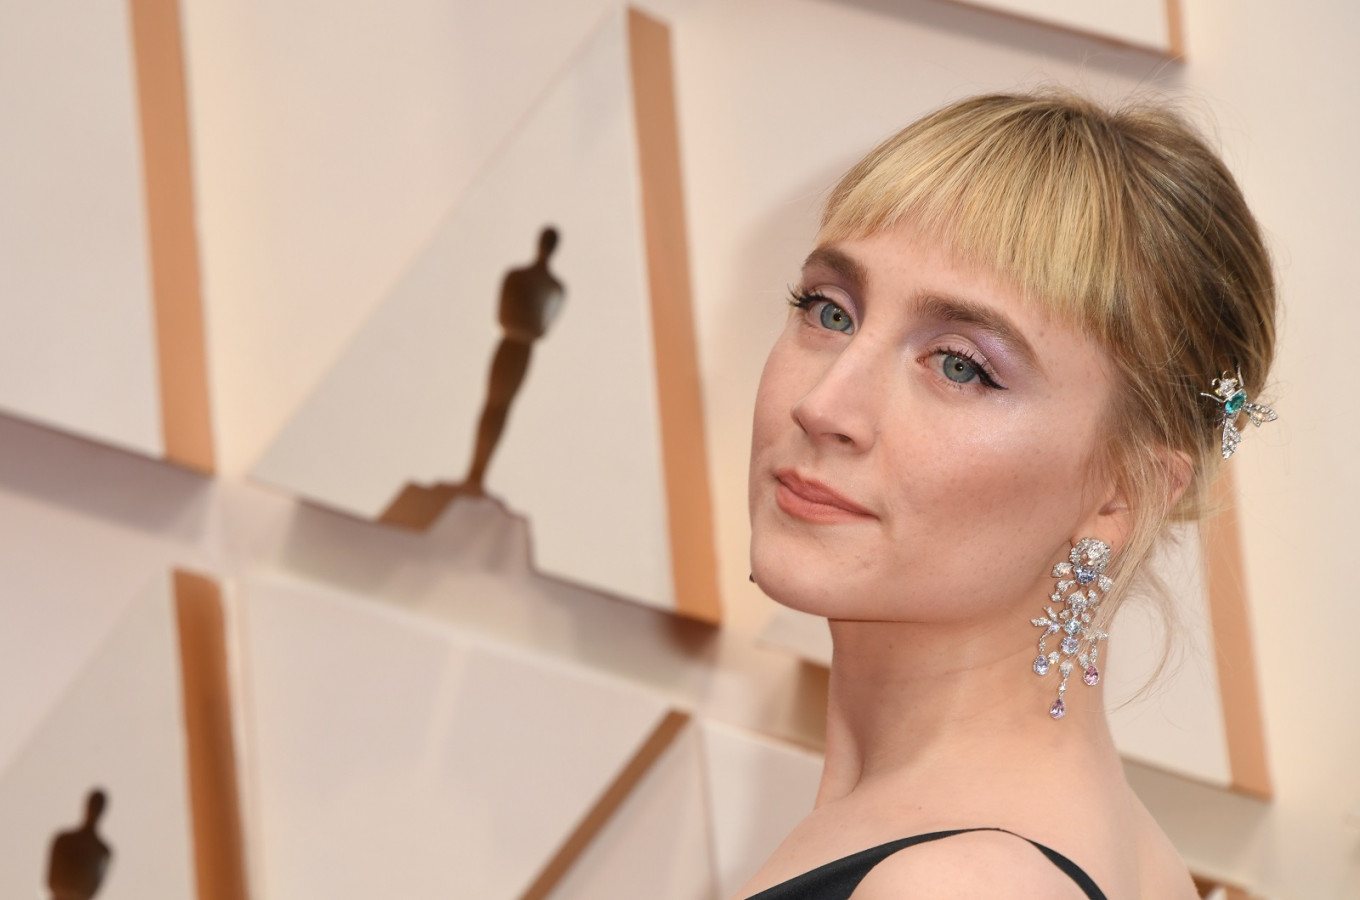 Saoirse Ronan, described as 'the new Meryl Streep,' talks about working with the icon